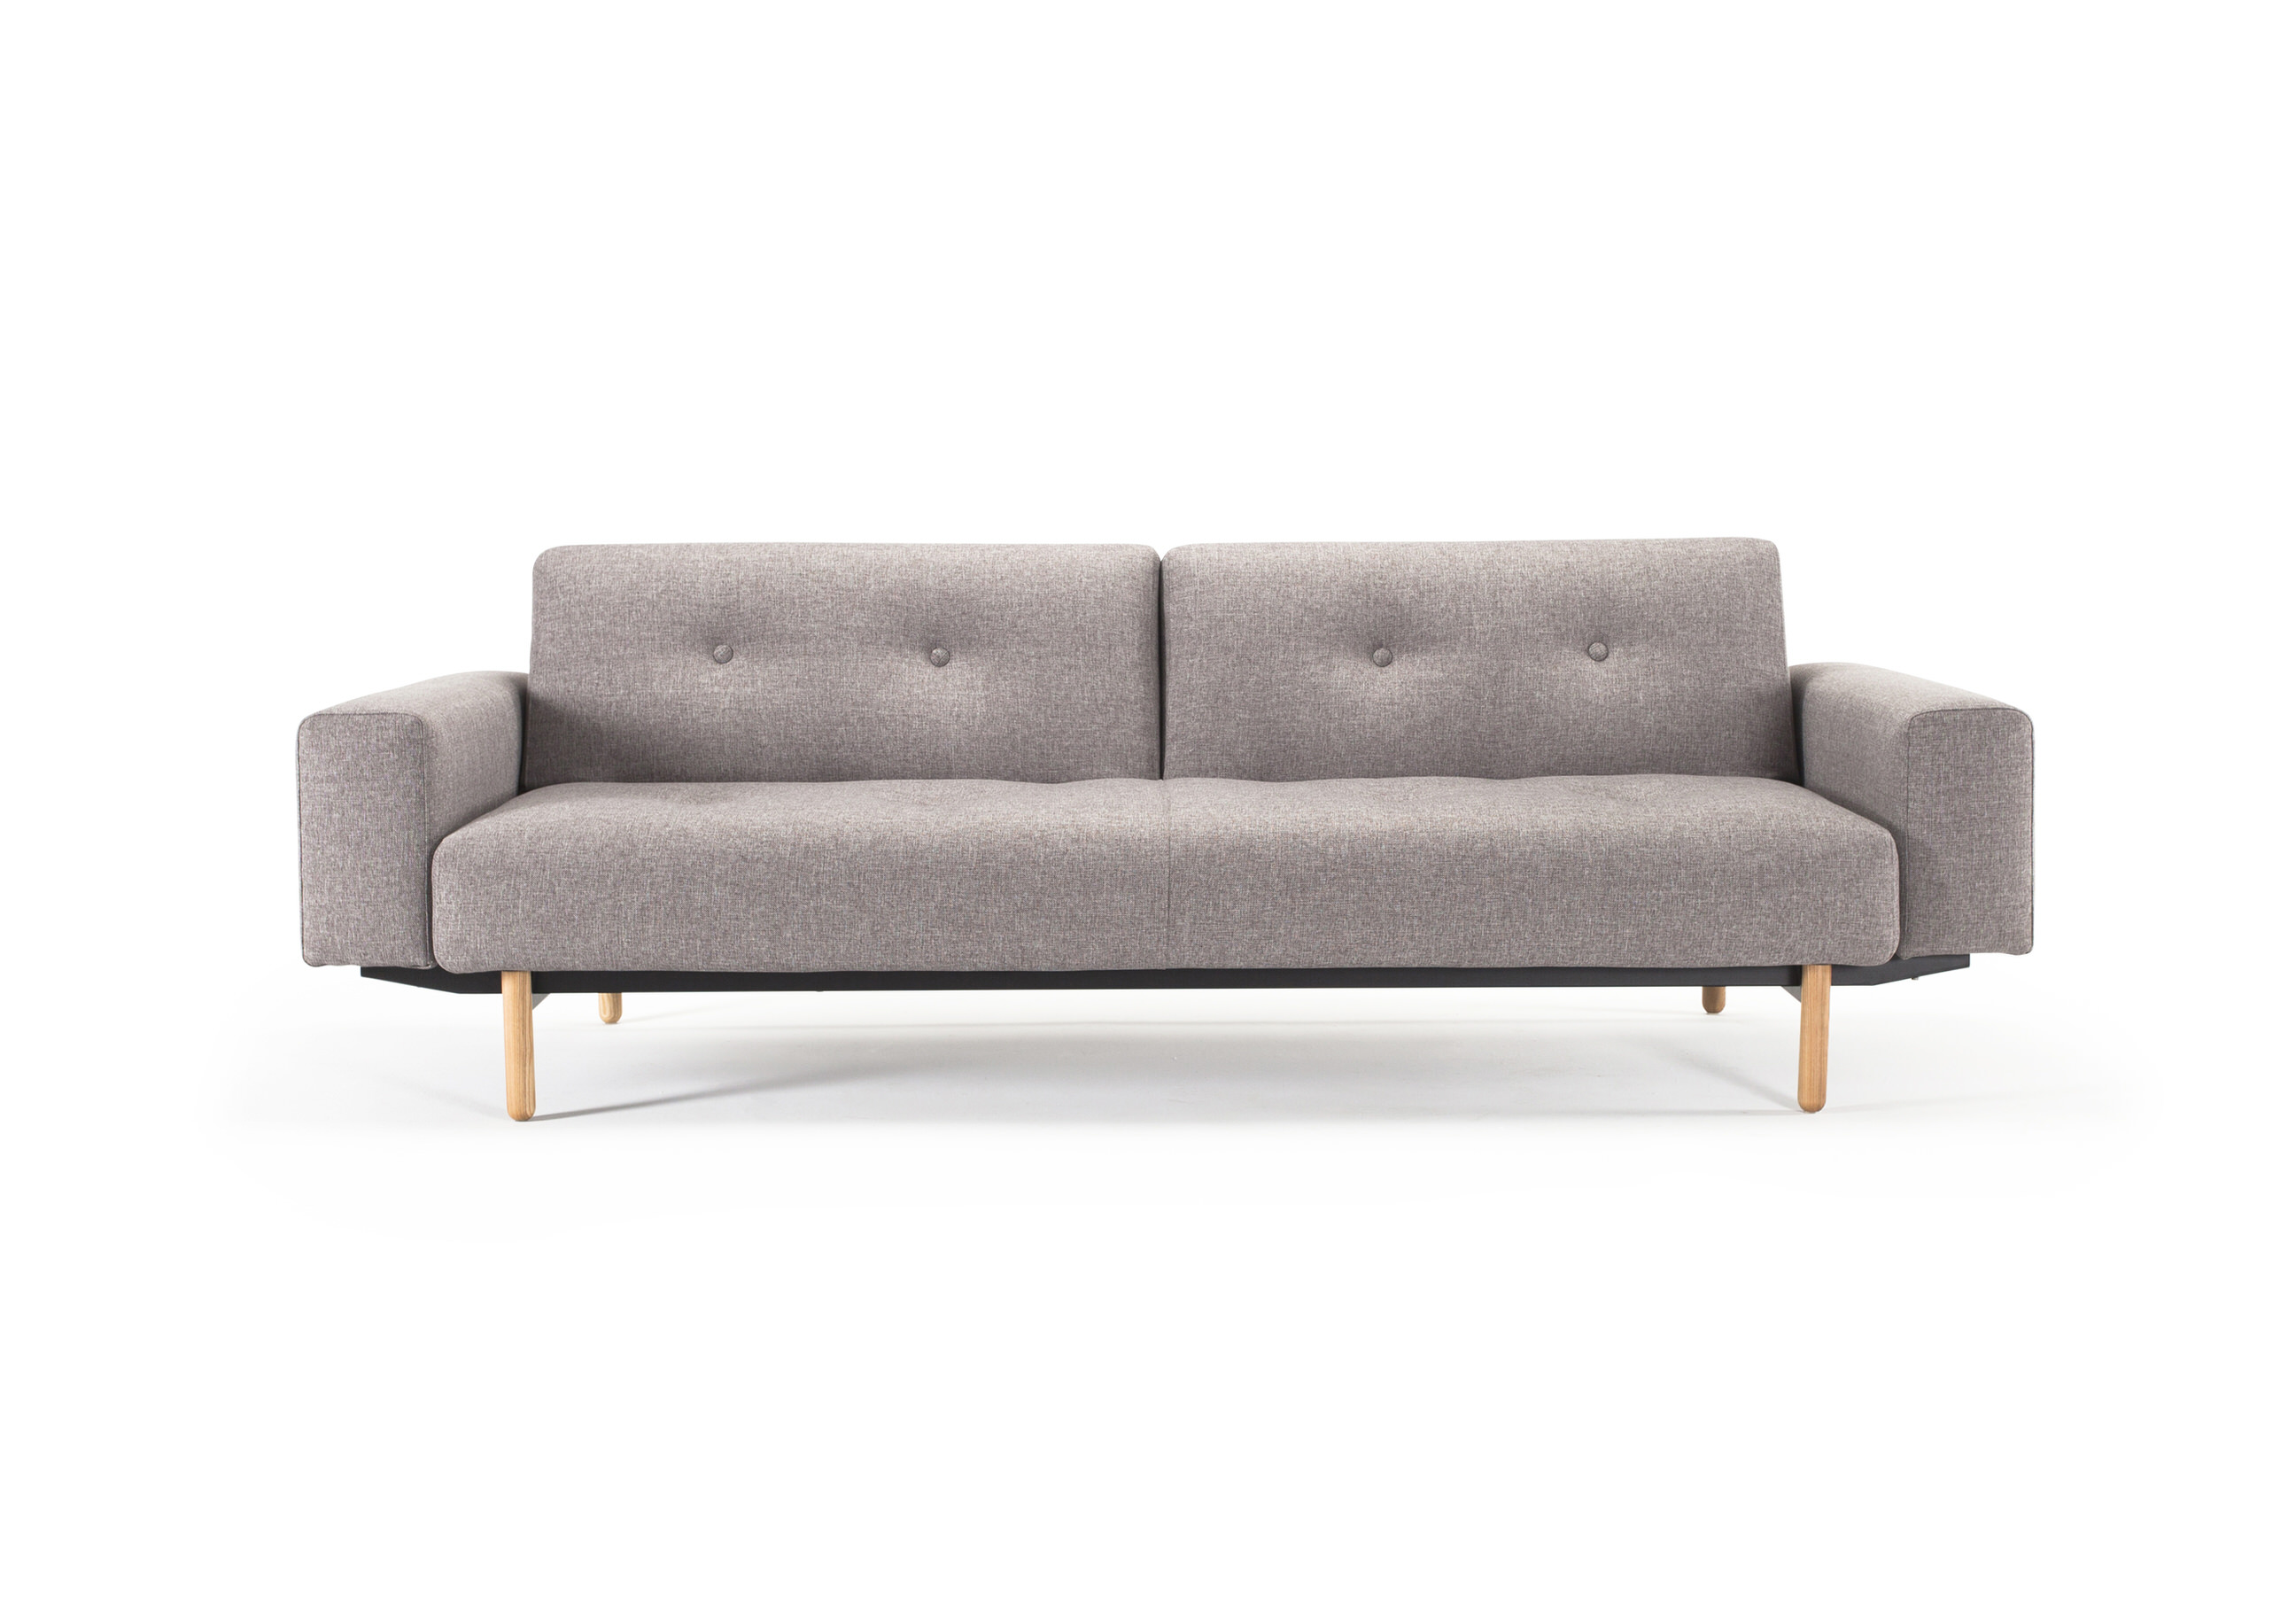 Buri sofa bed w arms mixed dance gray by innovation for One armed couch name